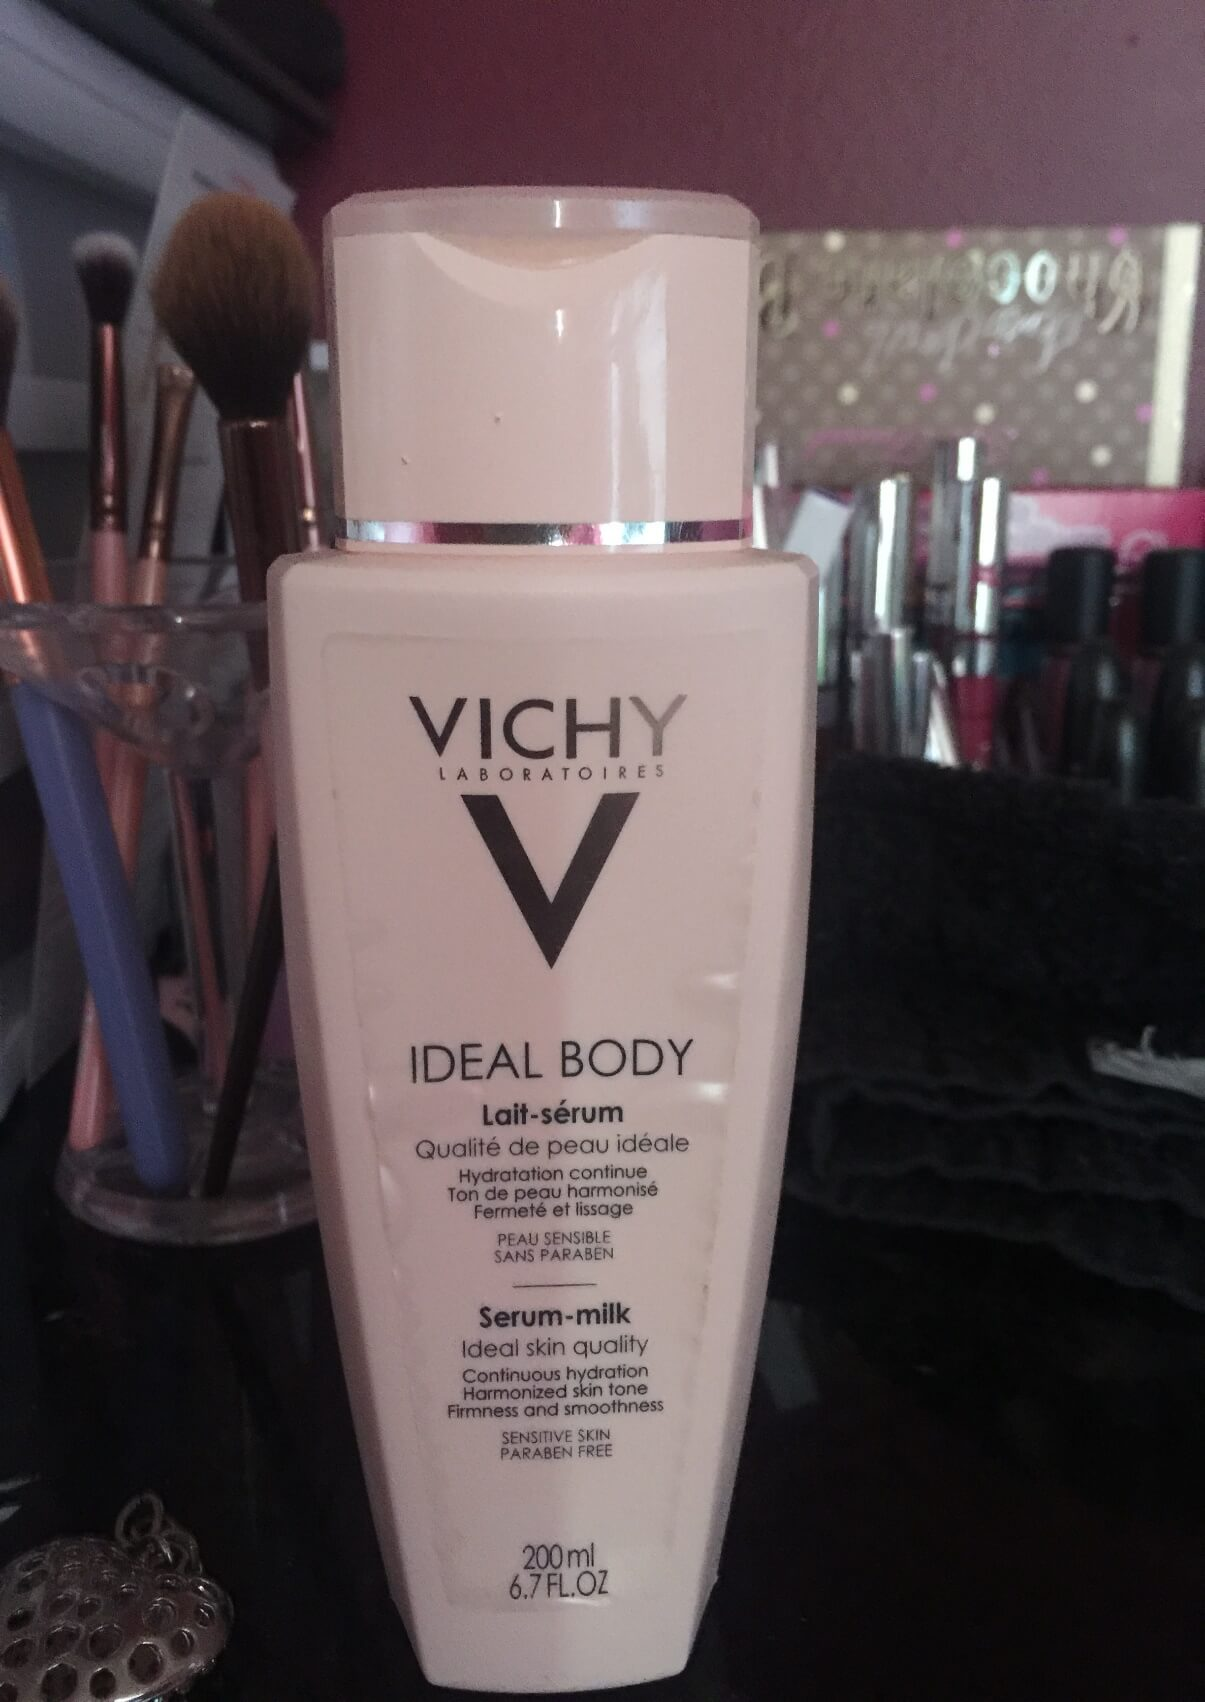 sua-duong-vichy-ideal-body-serum-milk-01